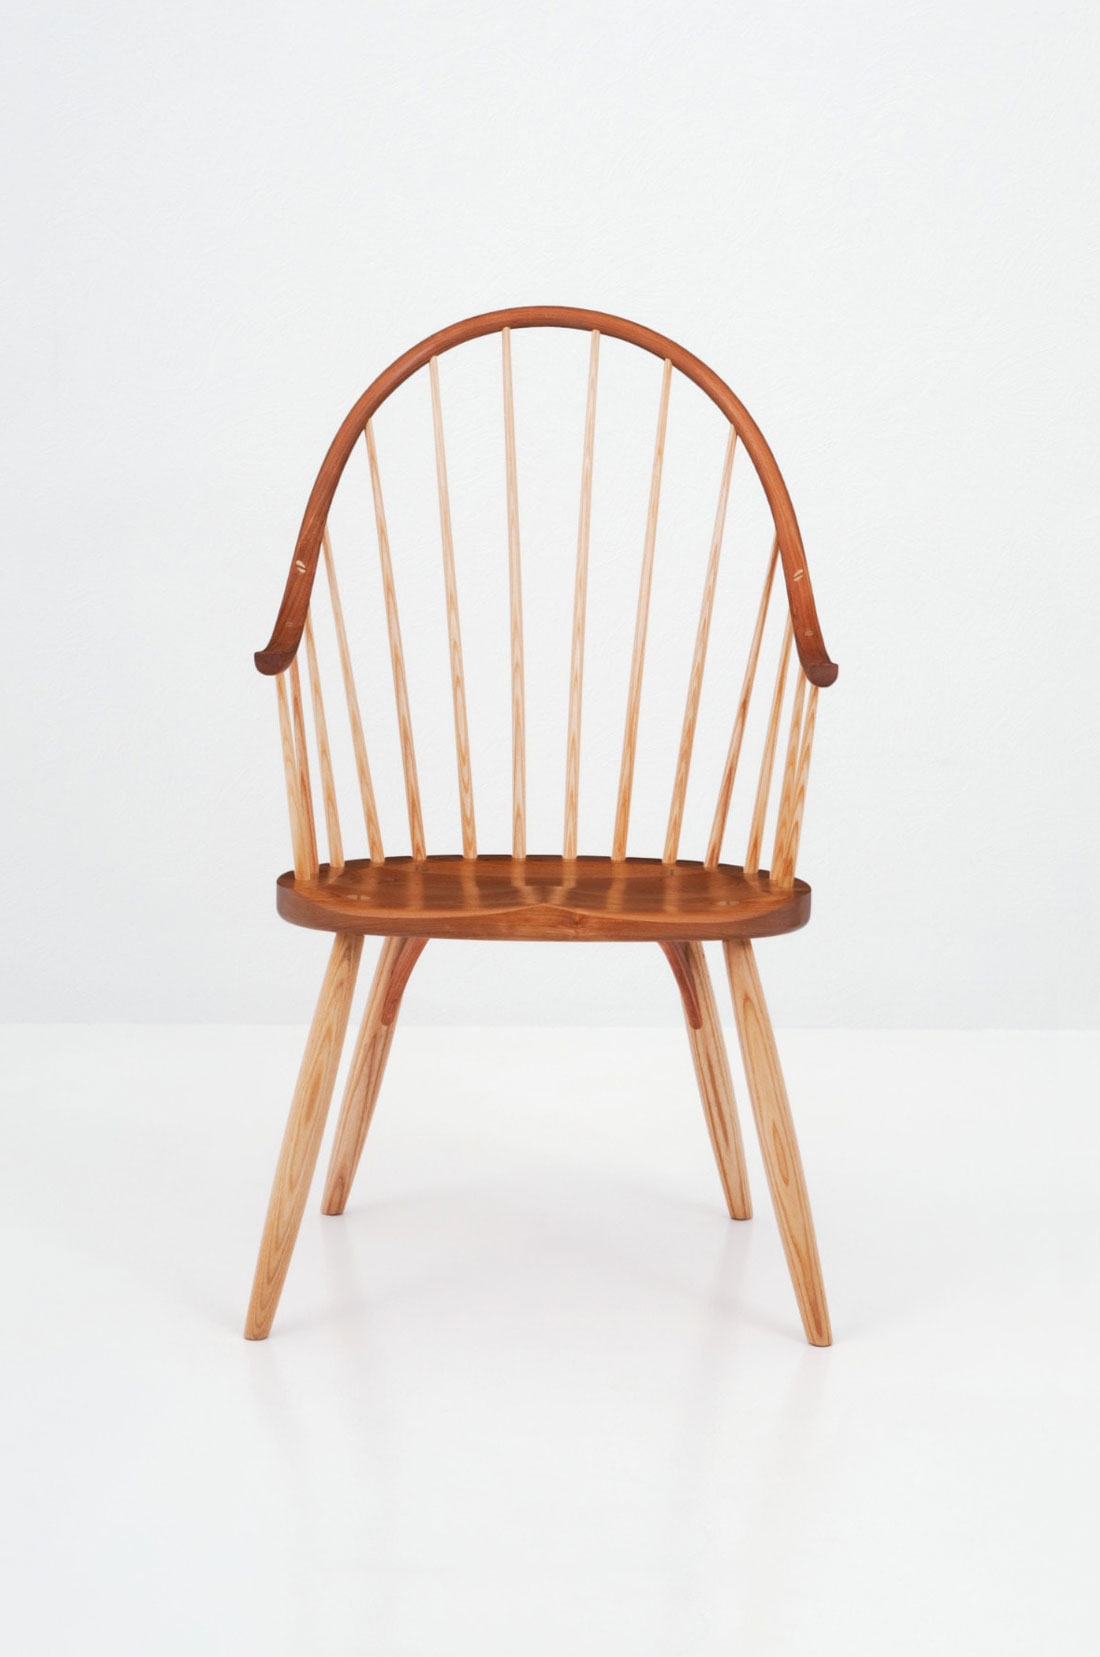 Thos. Moser Continuous Arm Chair - Thos. Moser